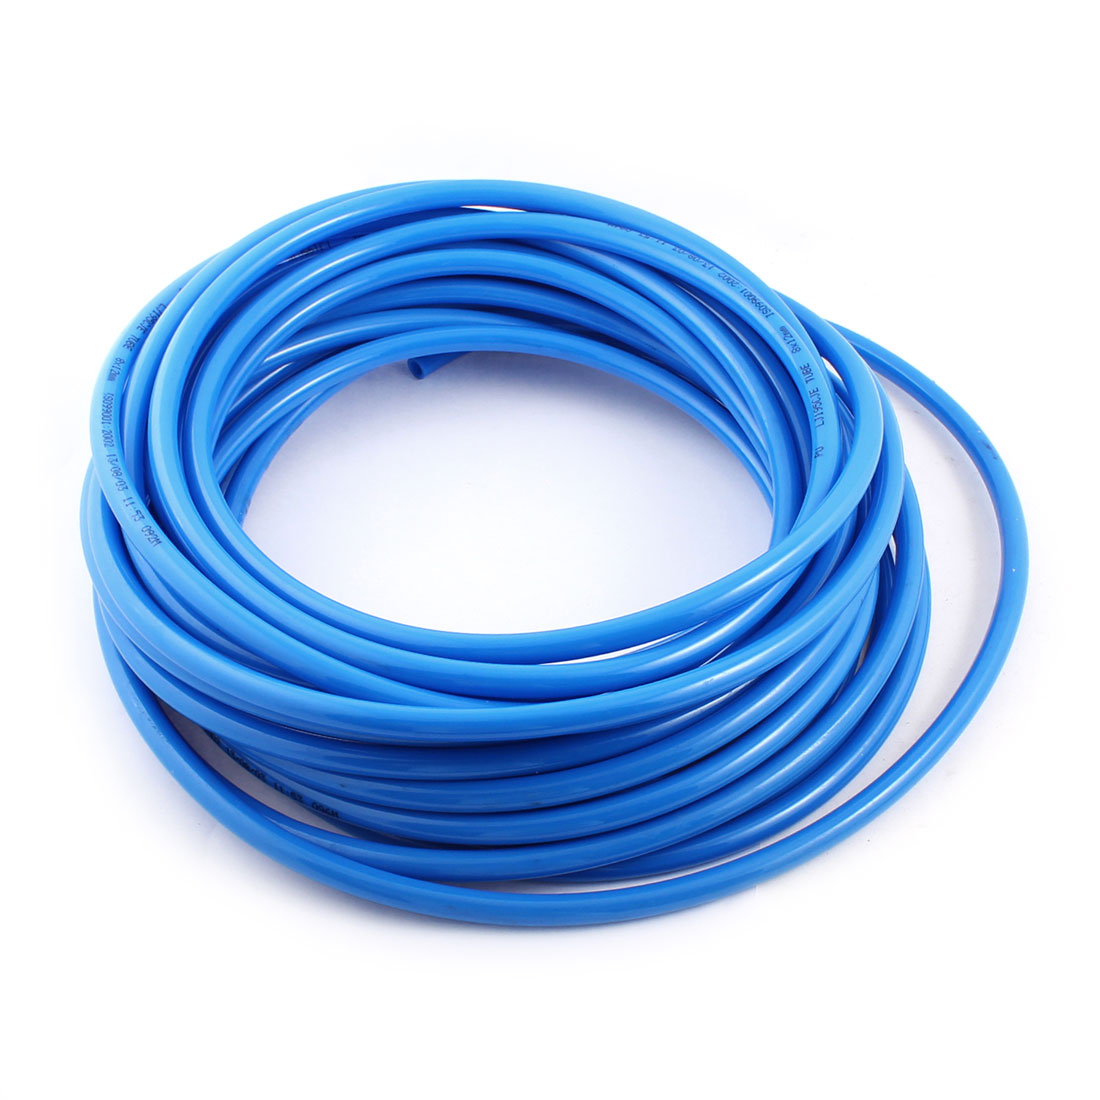 UXCELL 12Mm Od 8Mm Inner Dia Blue Pu Tube Hose Pipe 15M 50Ft For Pneumatics ravensburger ravensburger пазл венеция 1000 шт